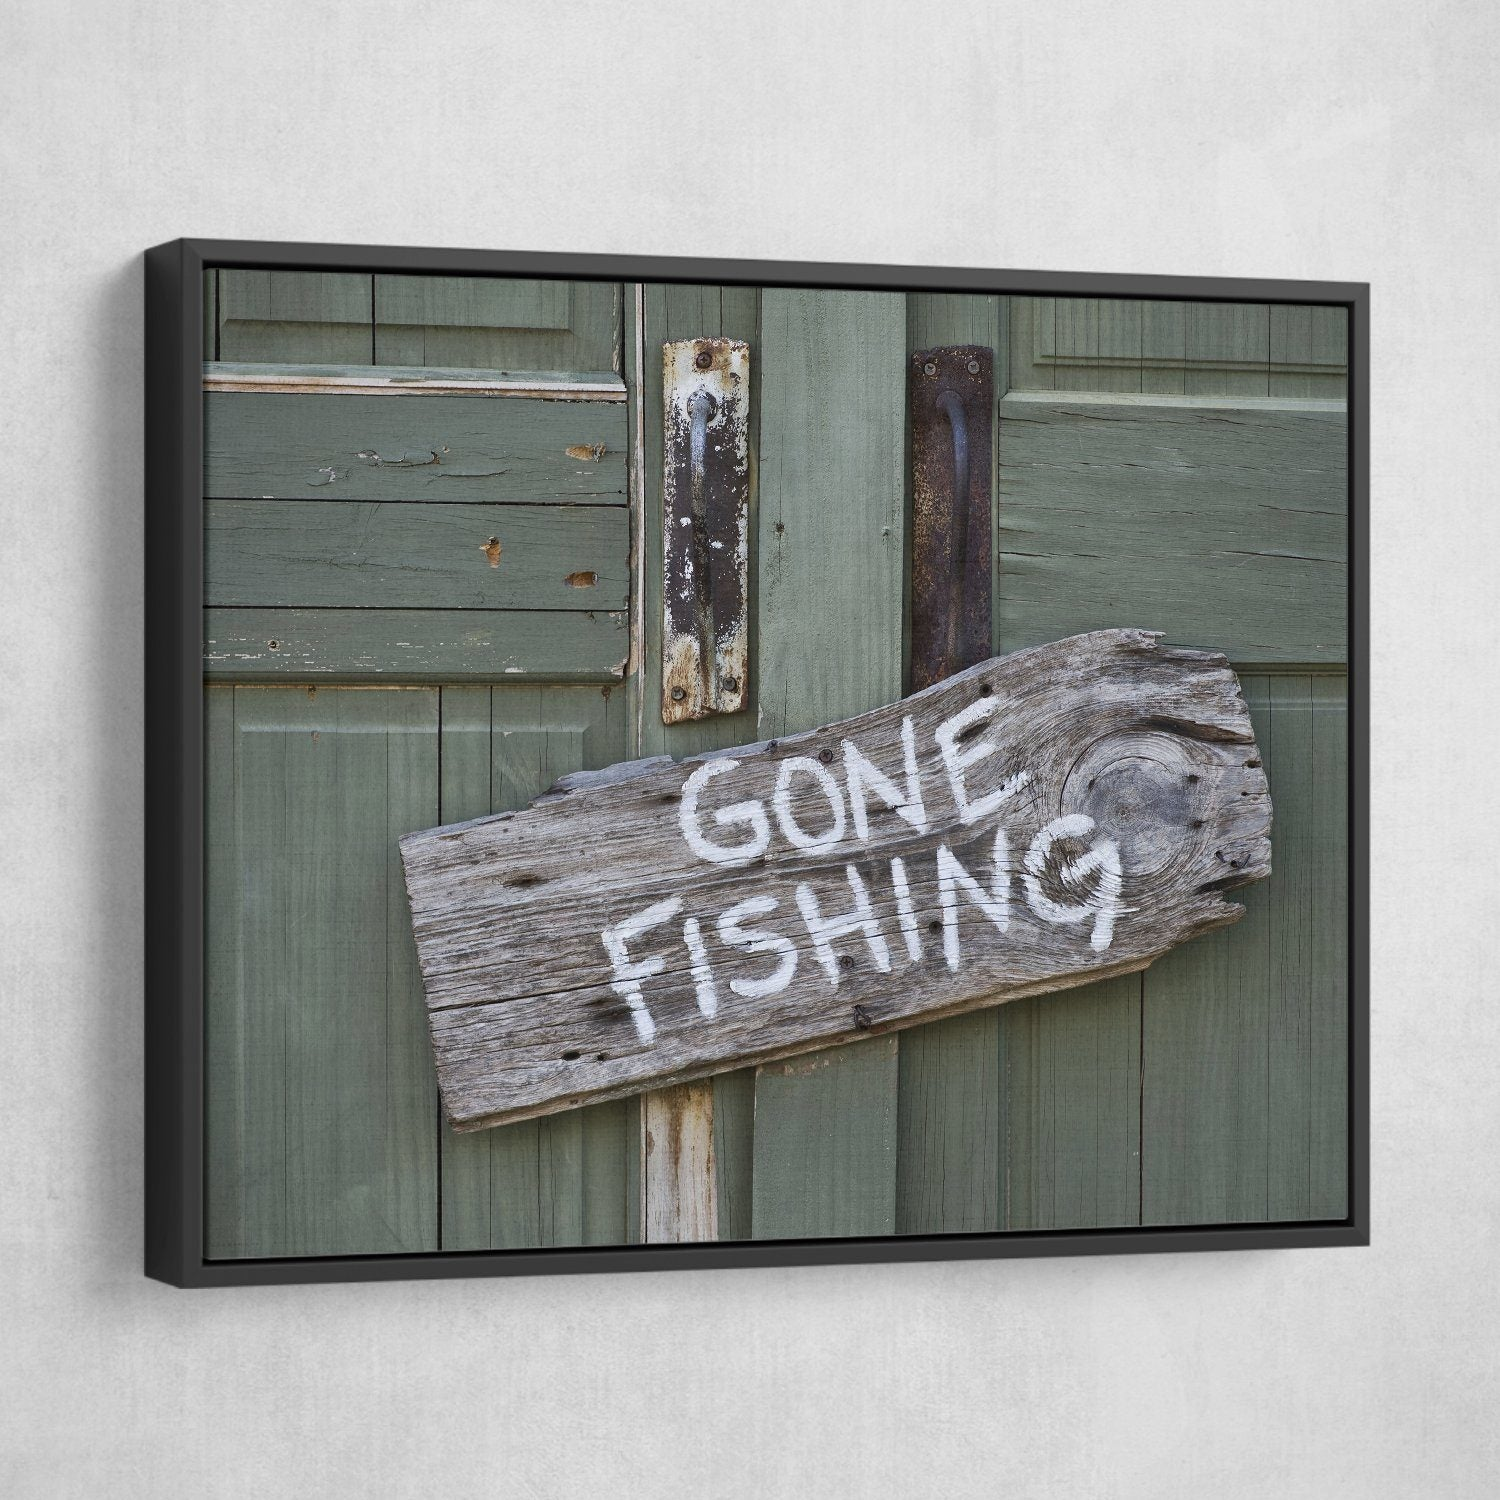 Gone Fishing wall art black floating frame